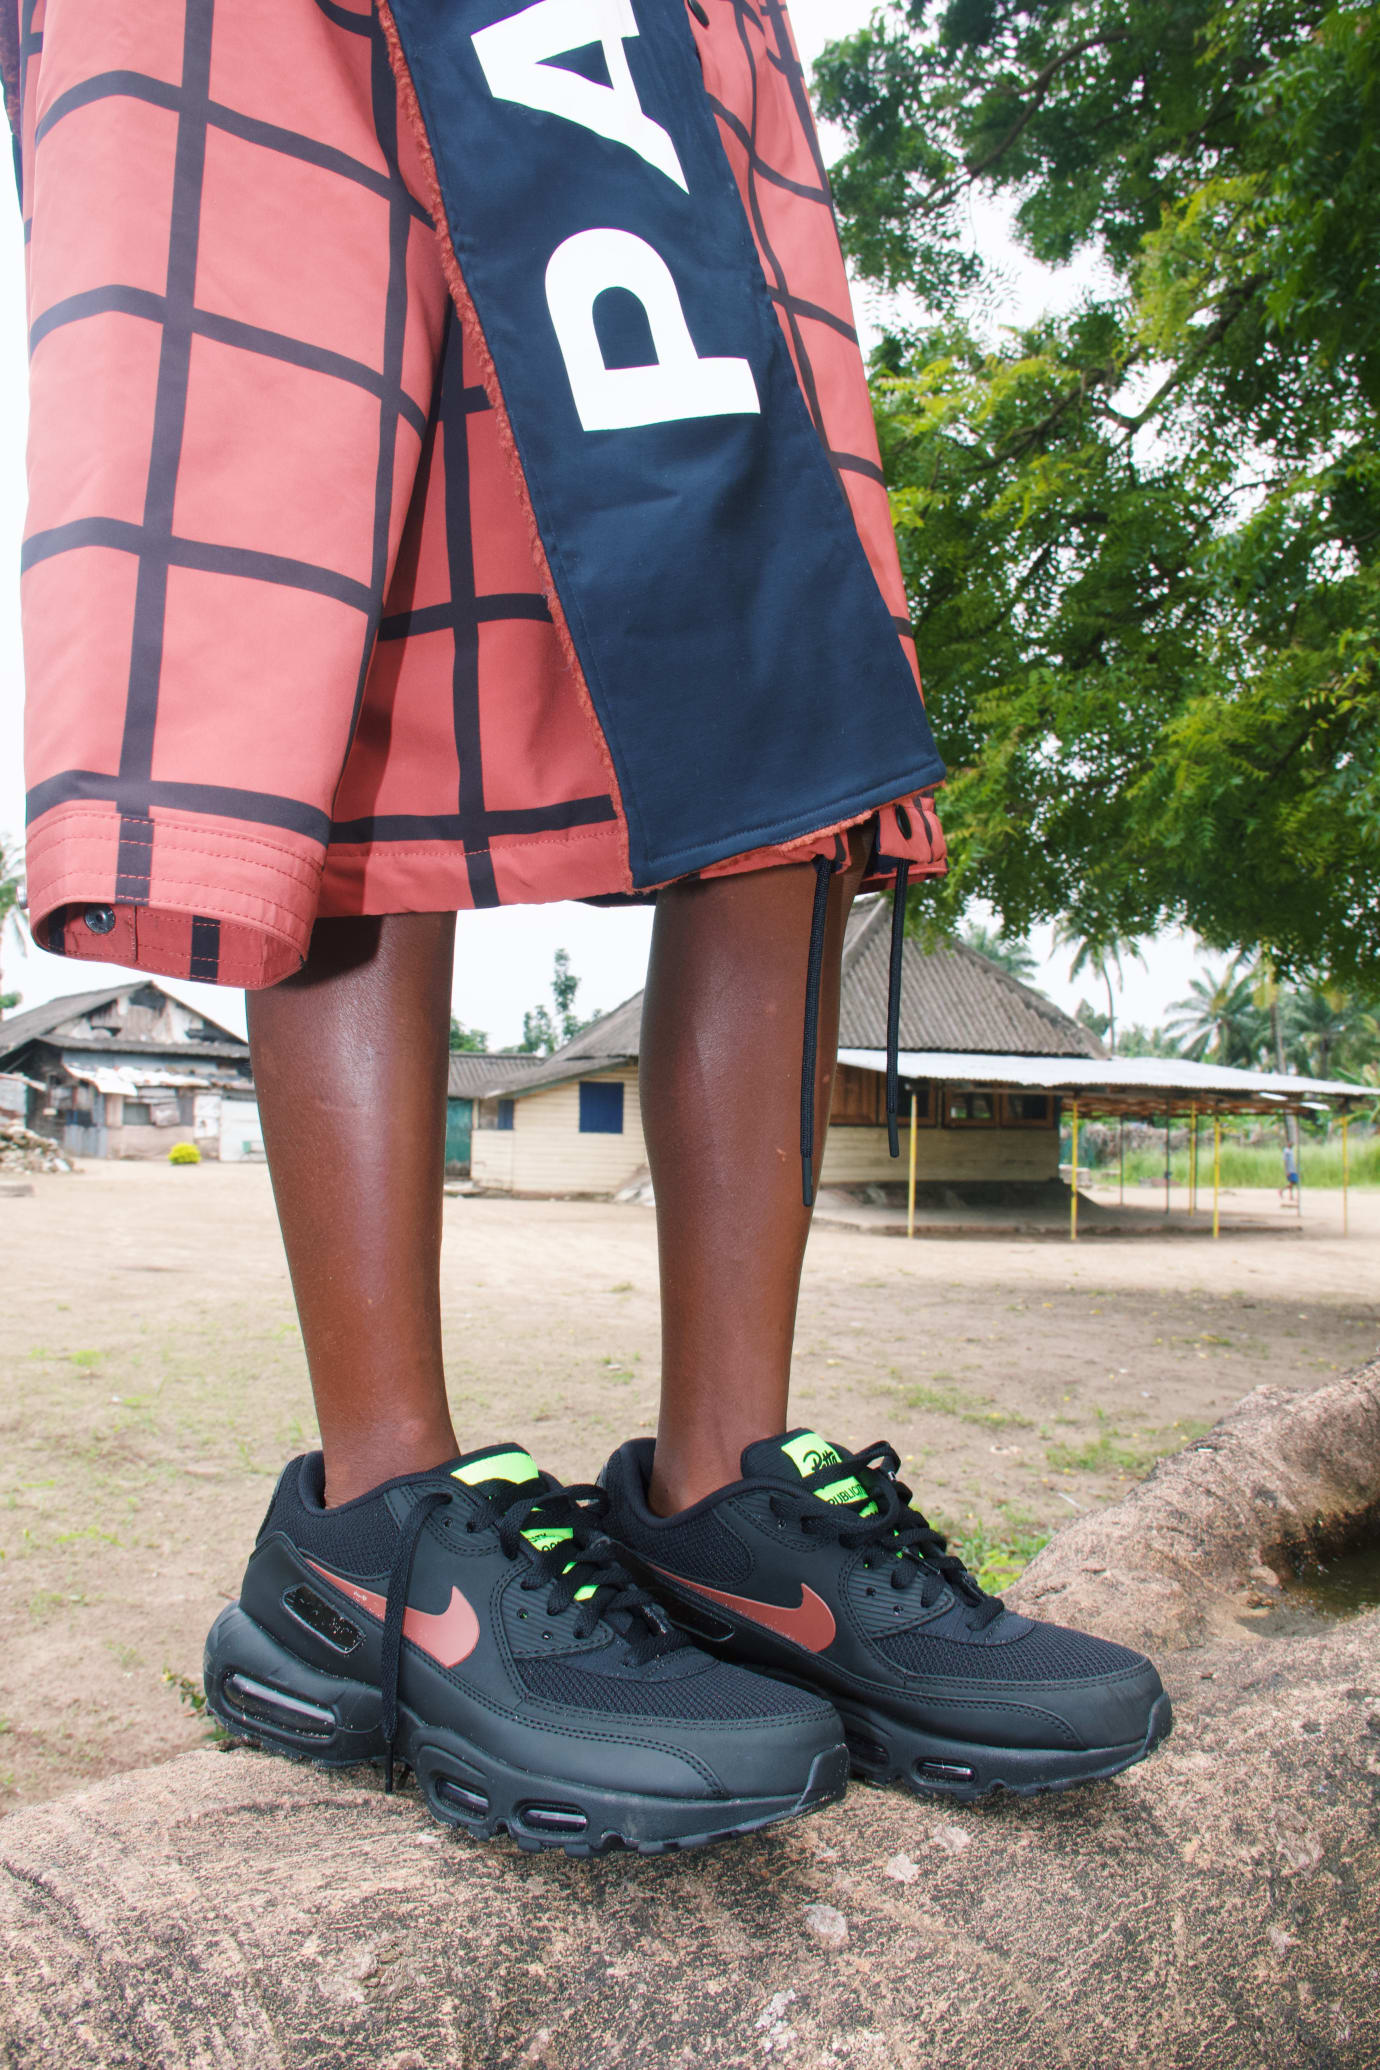 Patta x Nike Air Max 90 x 95 'Publicity. Publicity. Wohooooow!' Collection 1